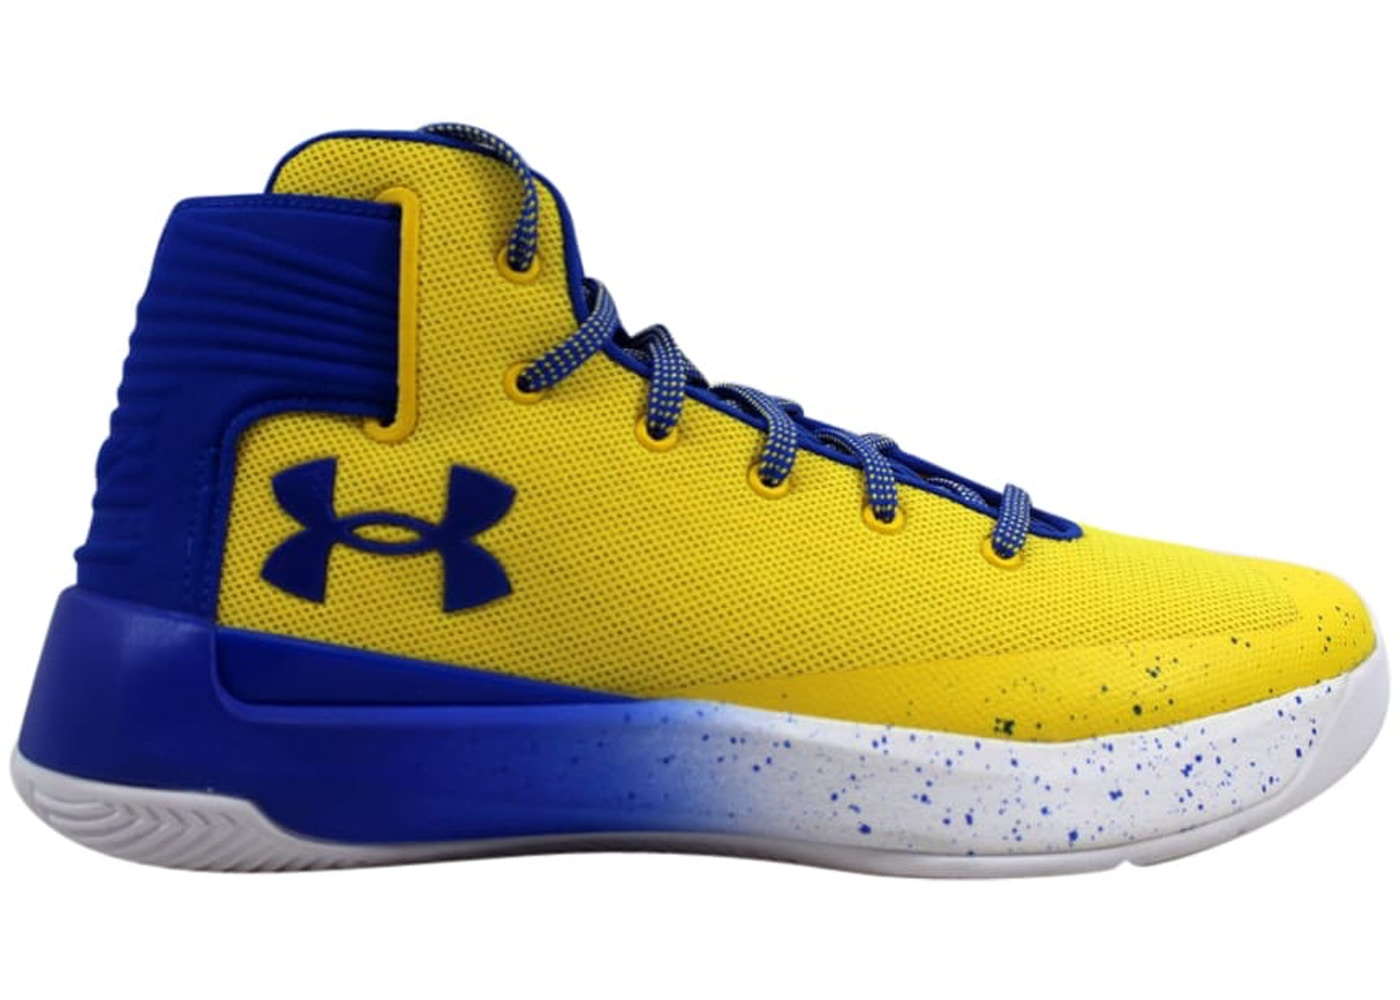 new concept d018e a0a19 Under Armour SC Curry 3 Zero Taxi Yellow - 1298308-700